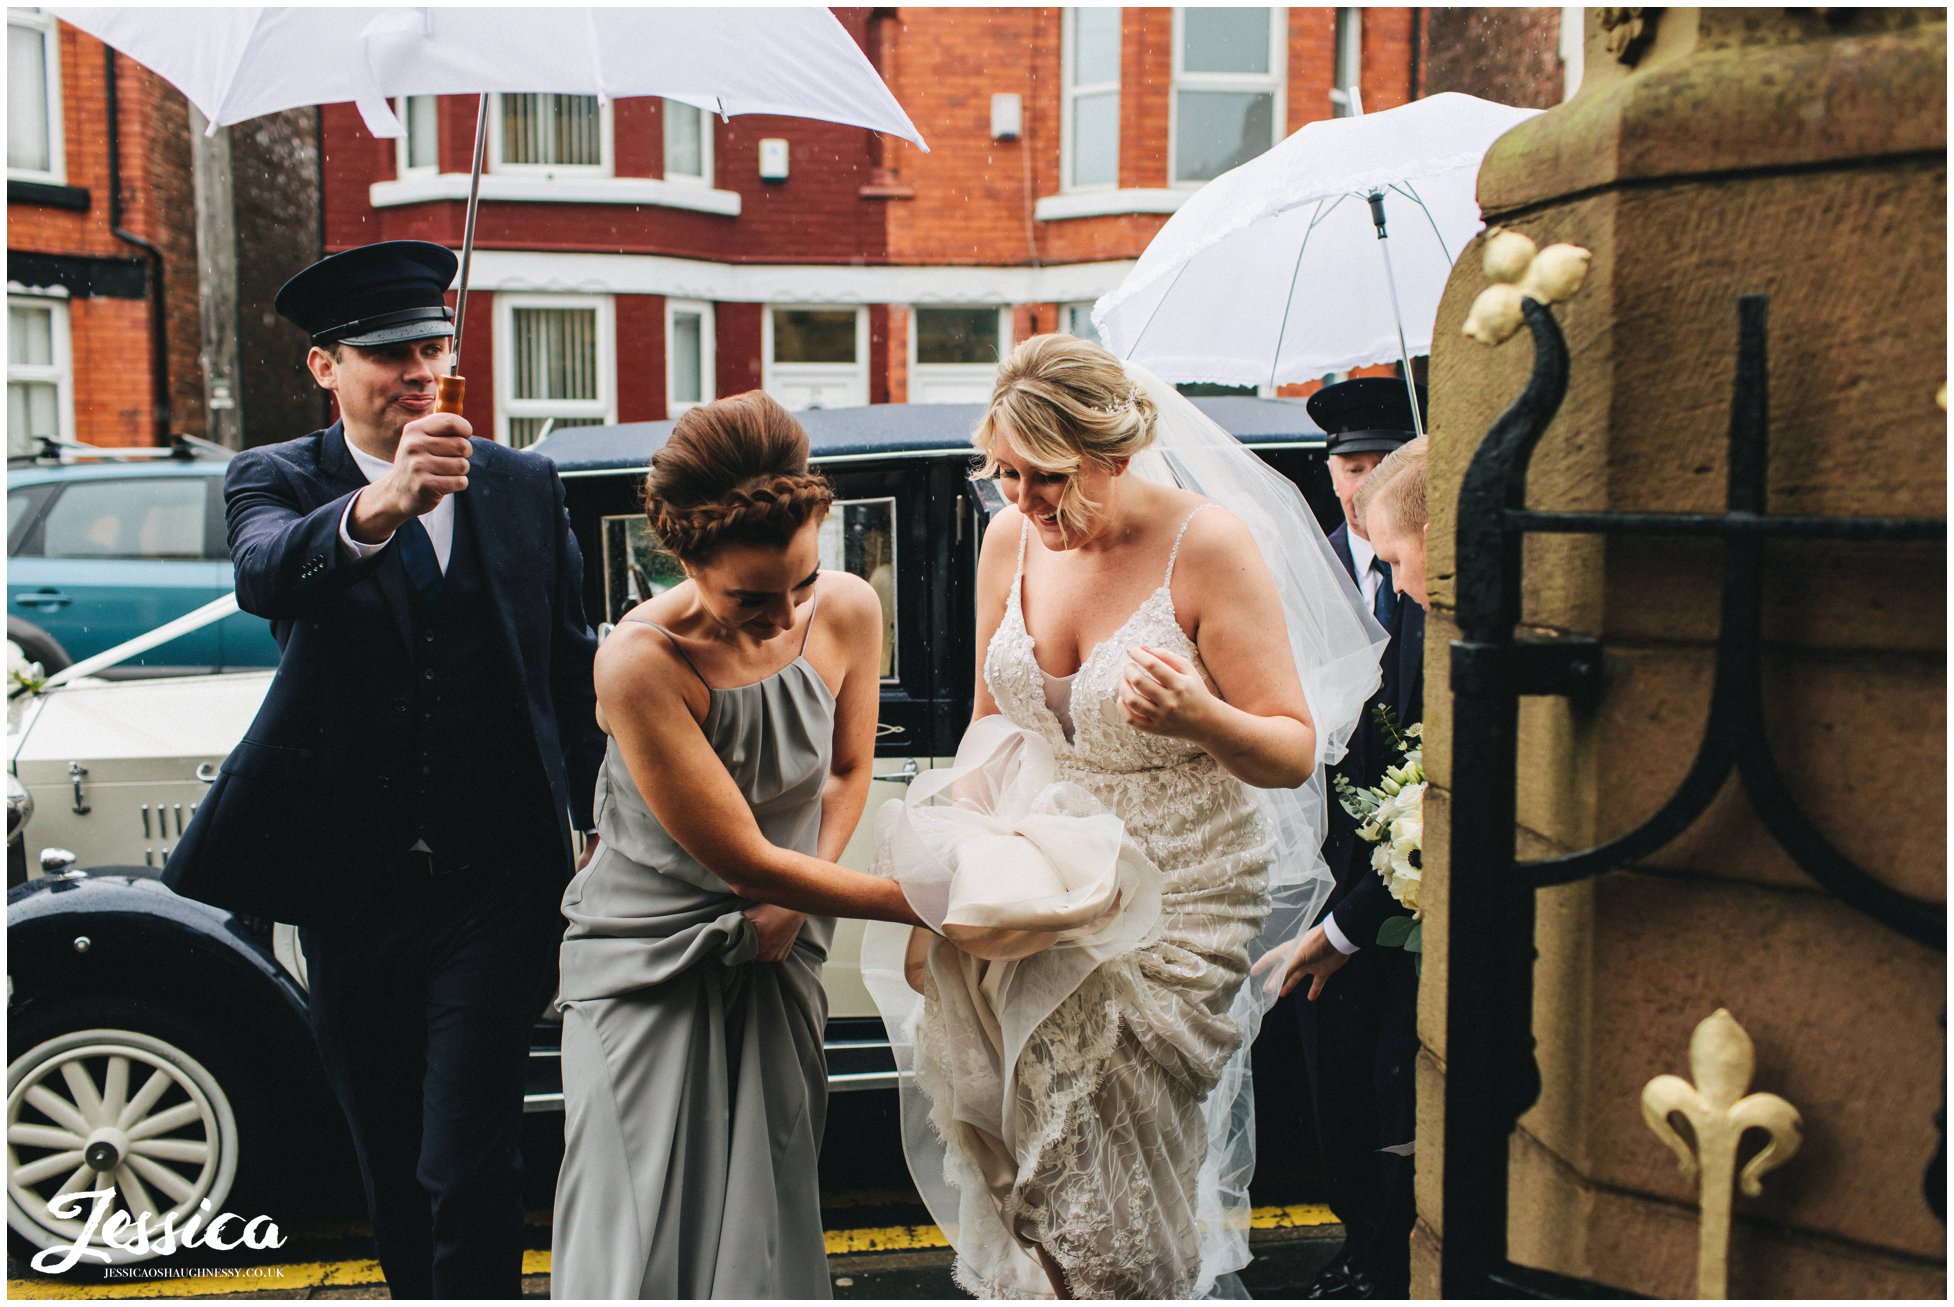 everyone helps the bride stay dry and she enters the church